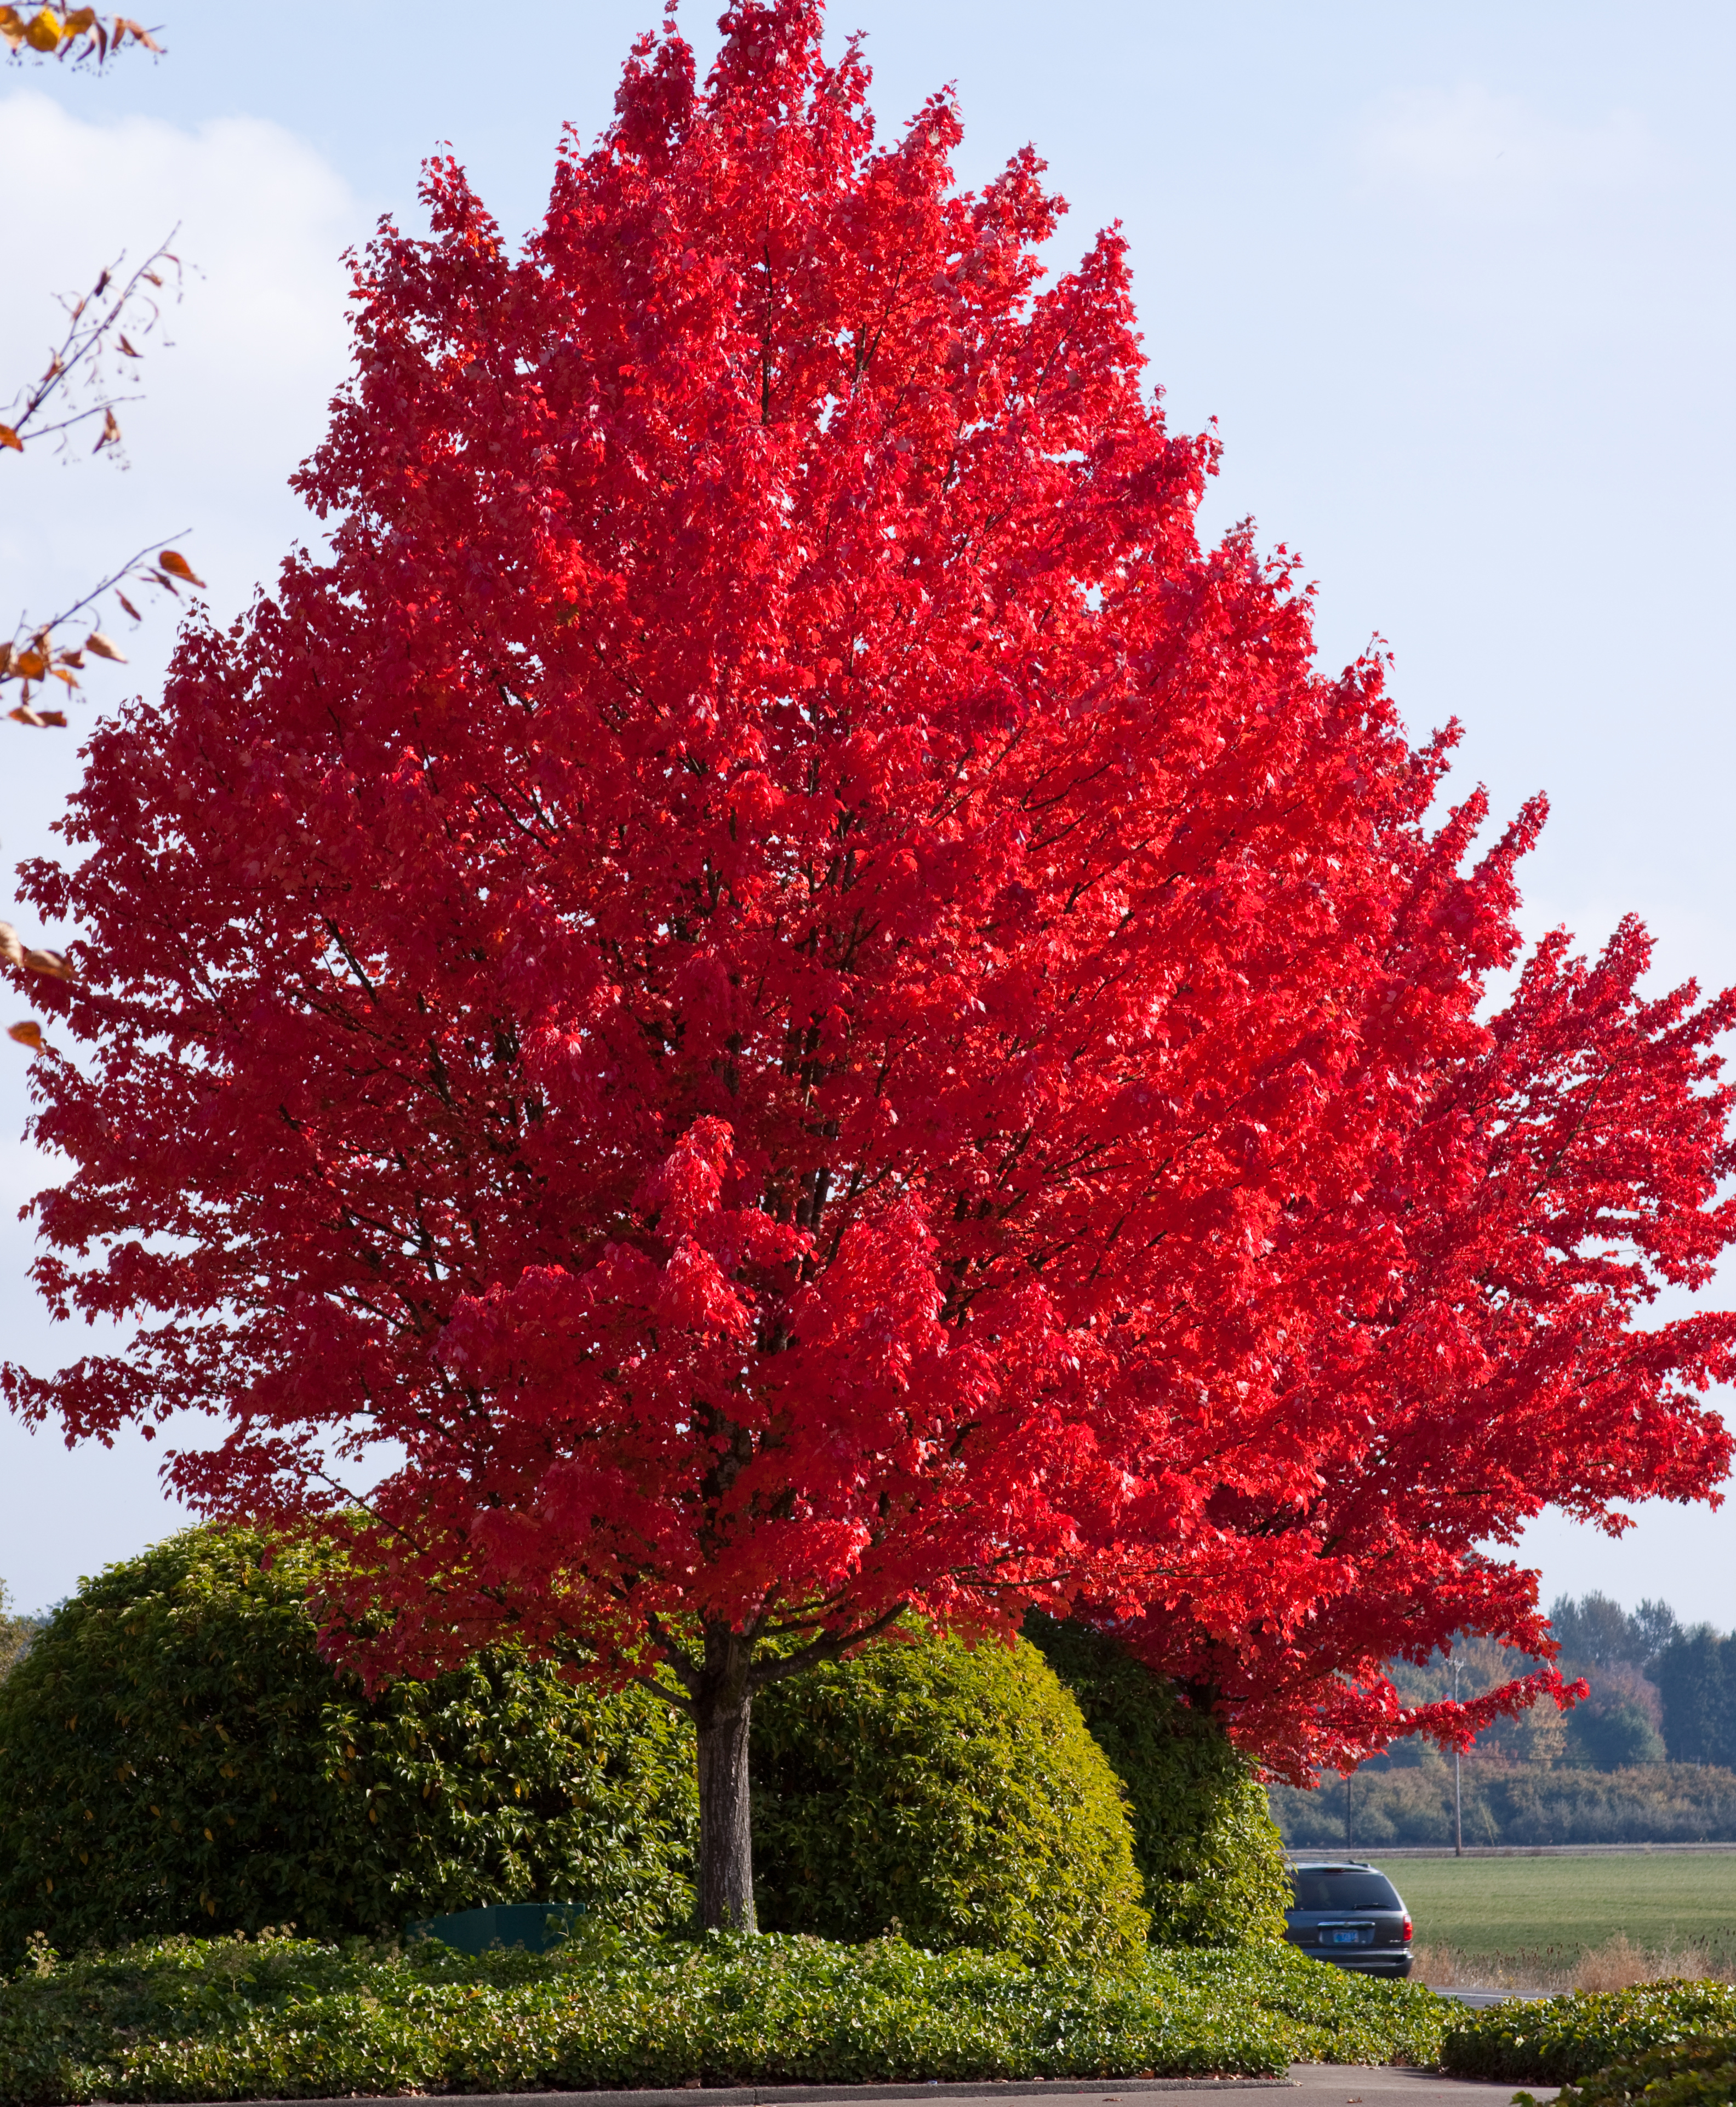 Red Maple Tree In Winter Perhaps A Shade Tree With